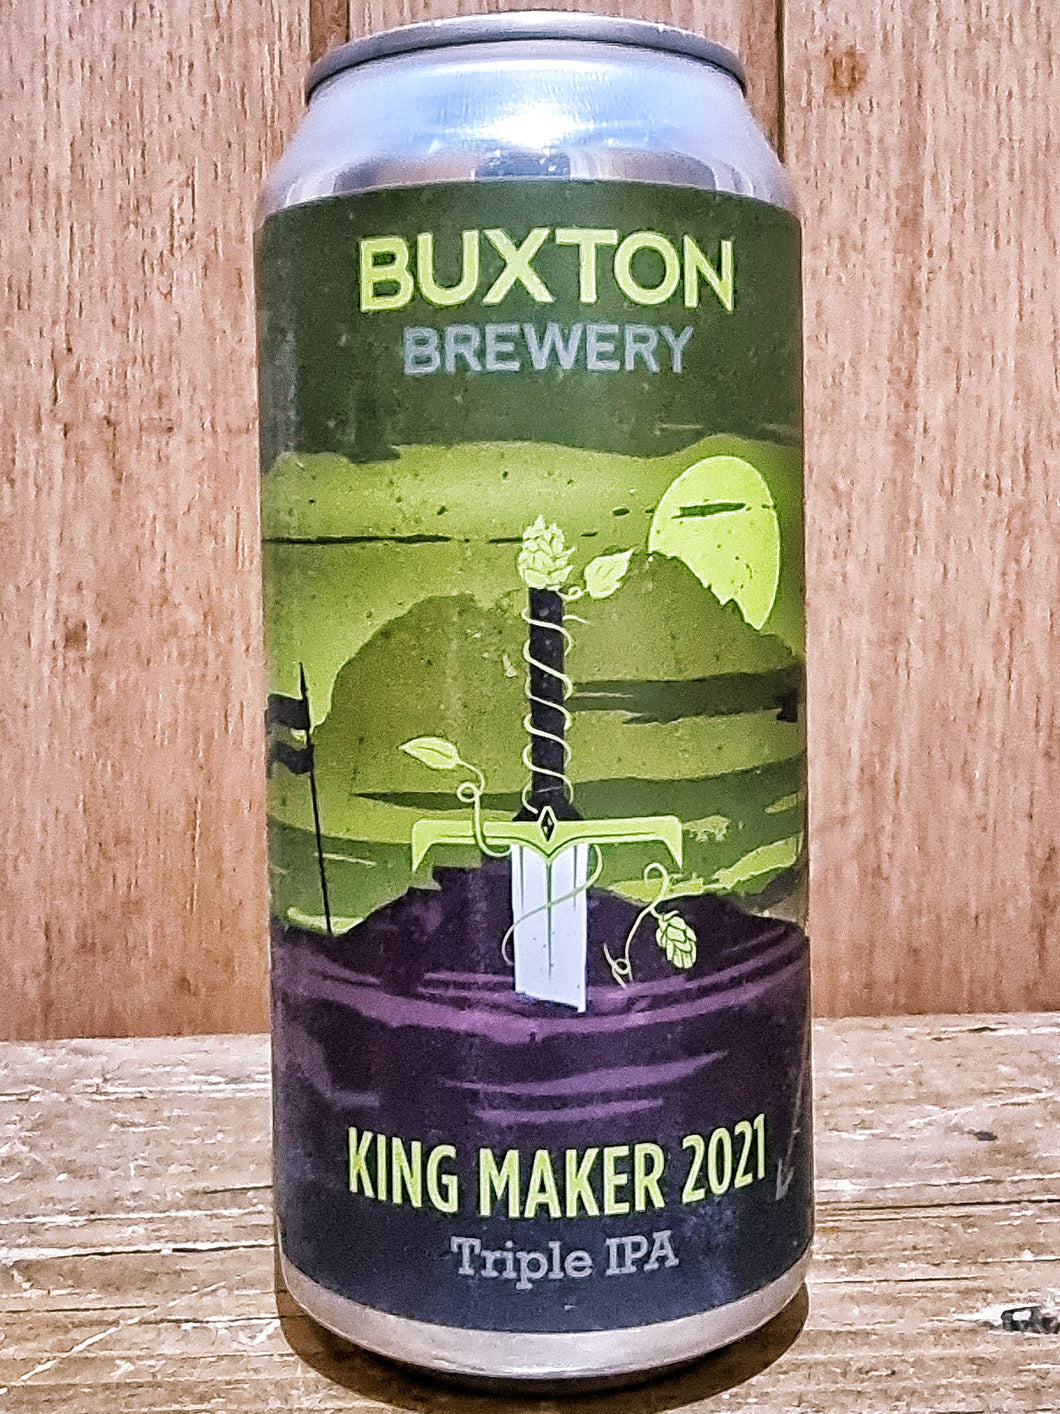 Buxton Brewery - King Maker 2021